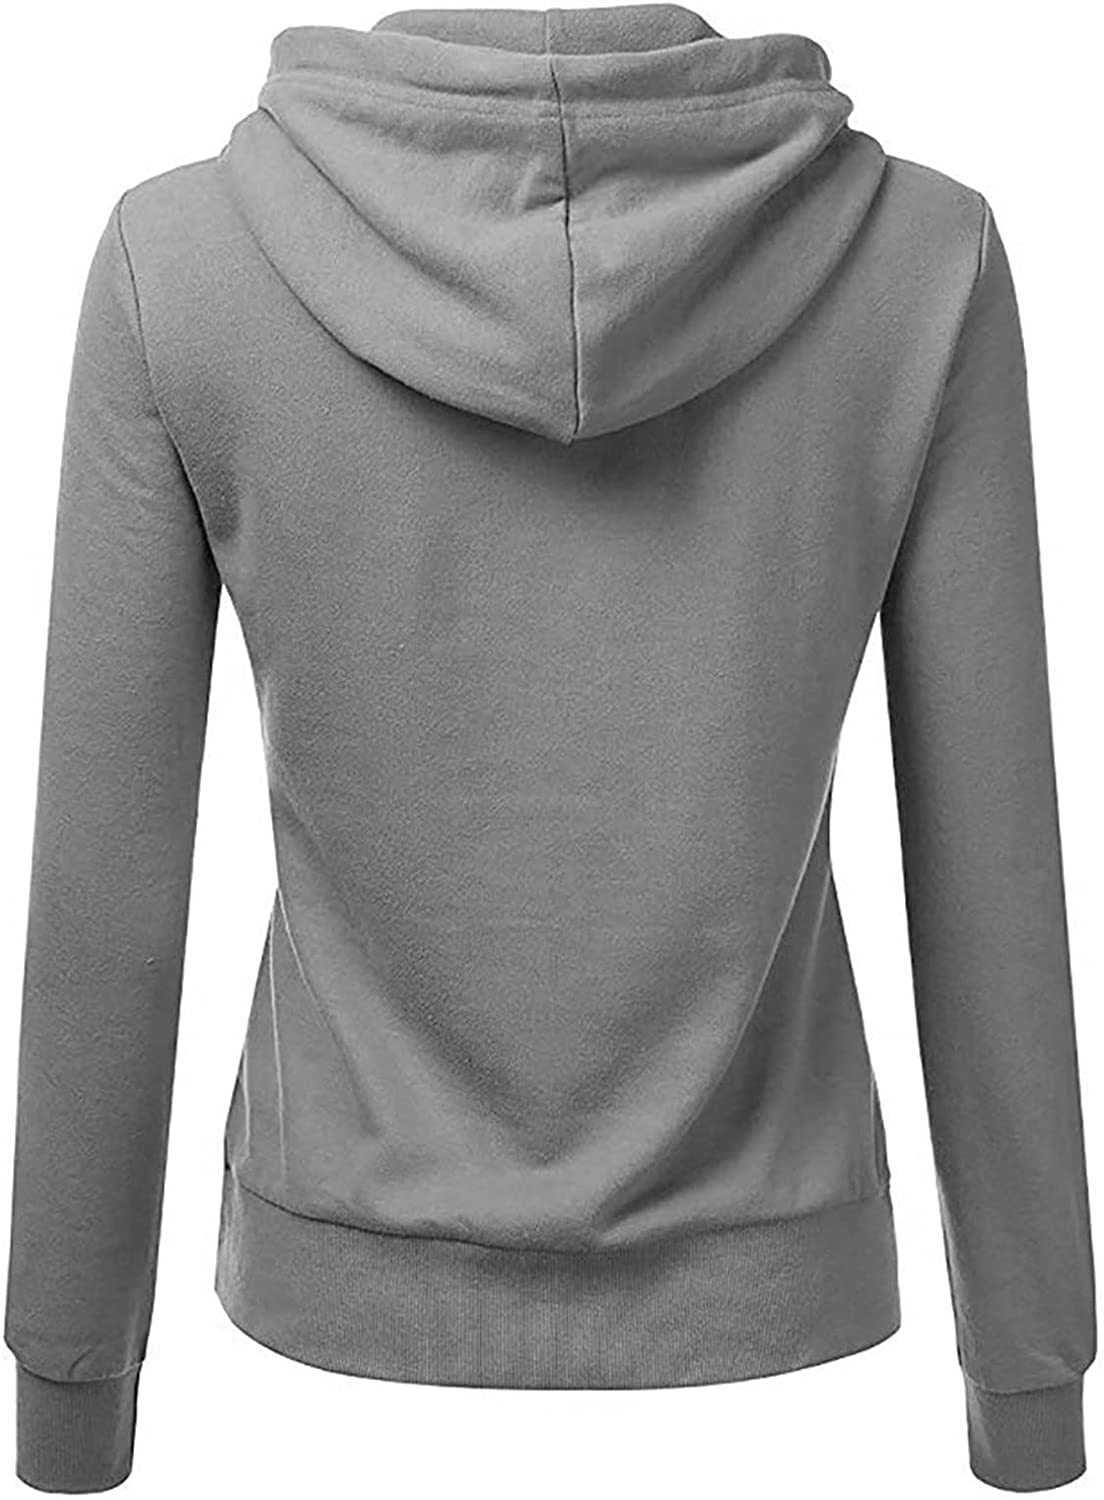 BEUU Hoodies for Women Solid Hooded Sweatshirt Basic Drawstring Pullover Jersey Jacket Long Sleeve Top with Pockets